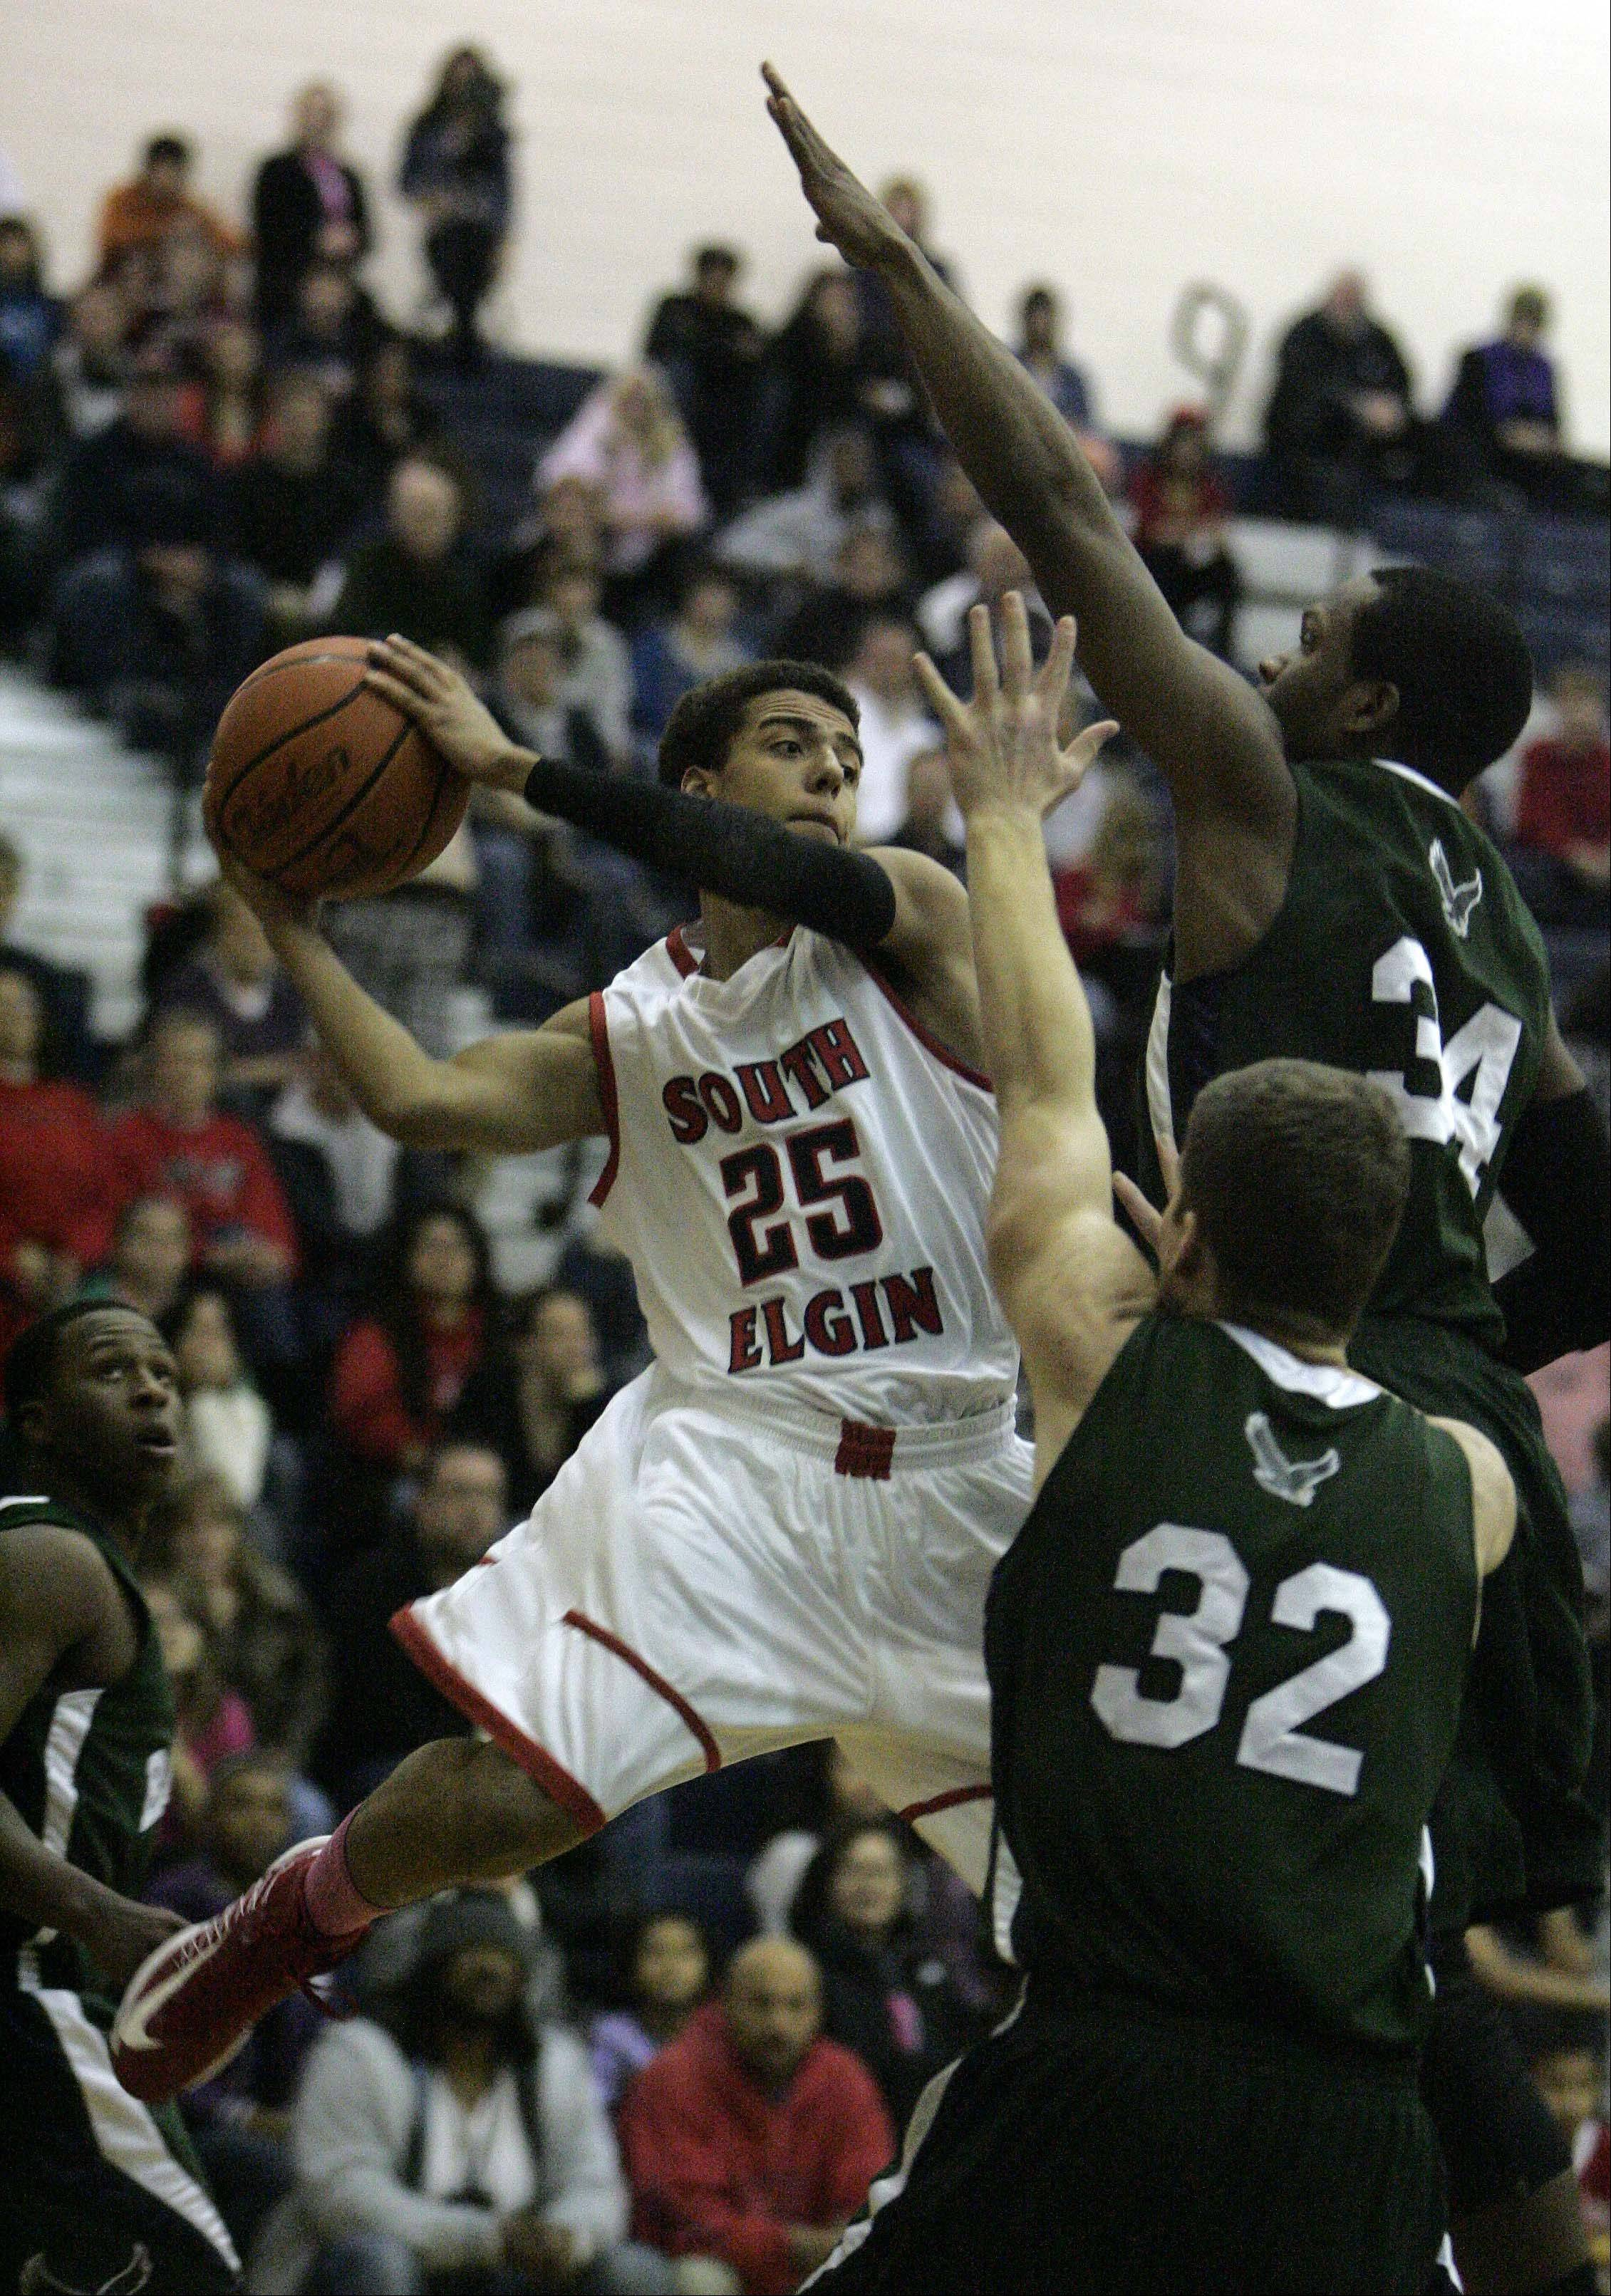 South Elgin guard Darius Wells goes to the hoop past Bartlett guard Lance Whitaker and Mitch Reid .